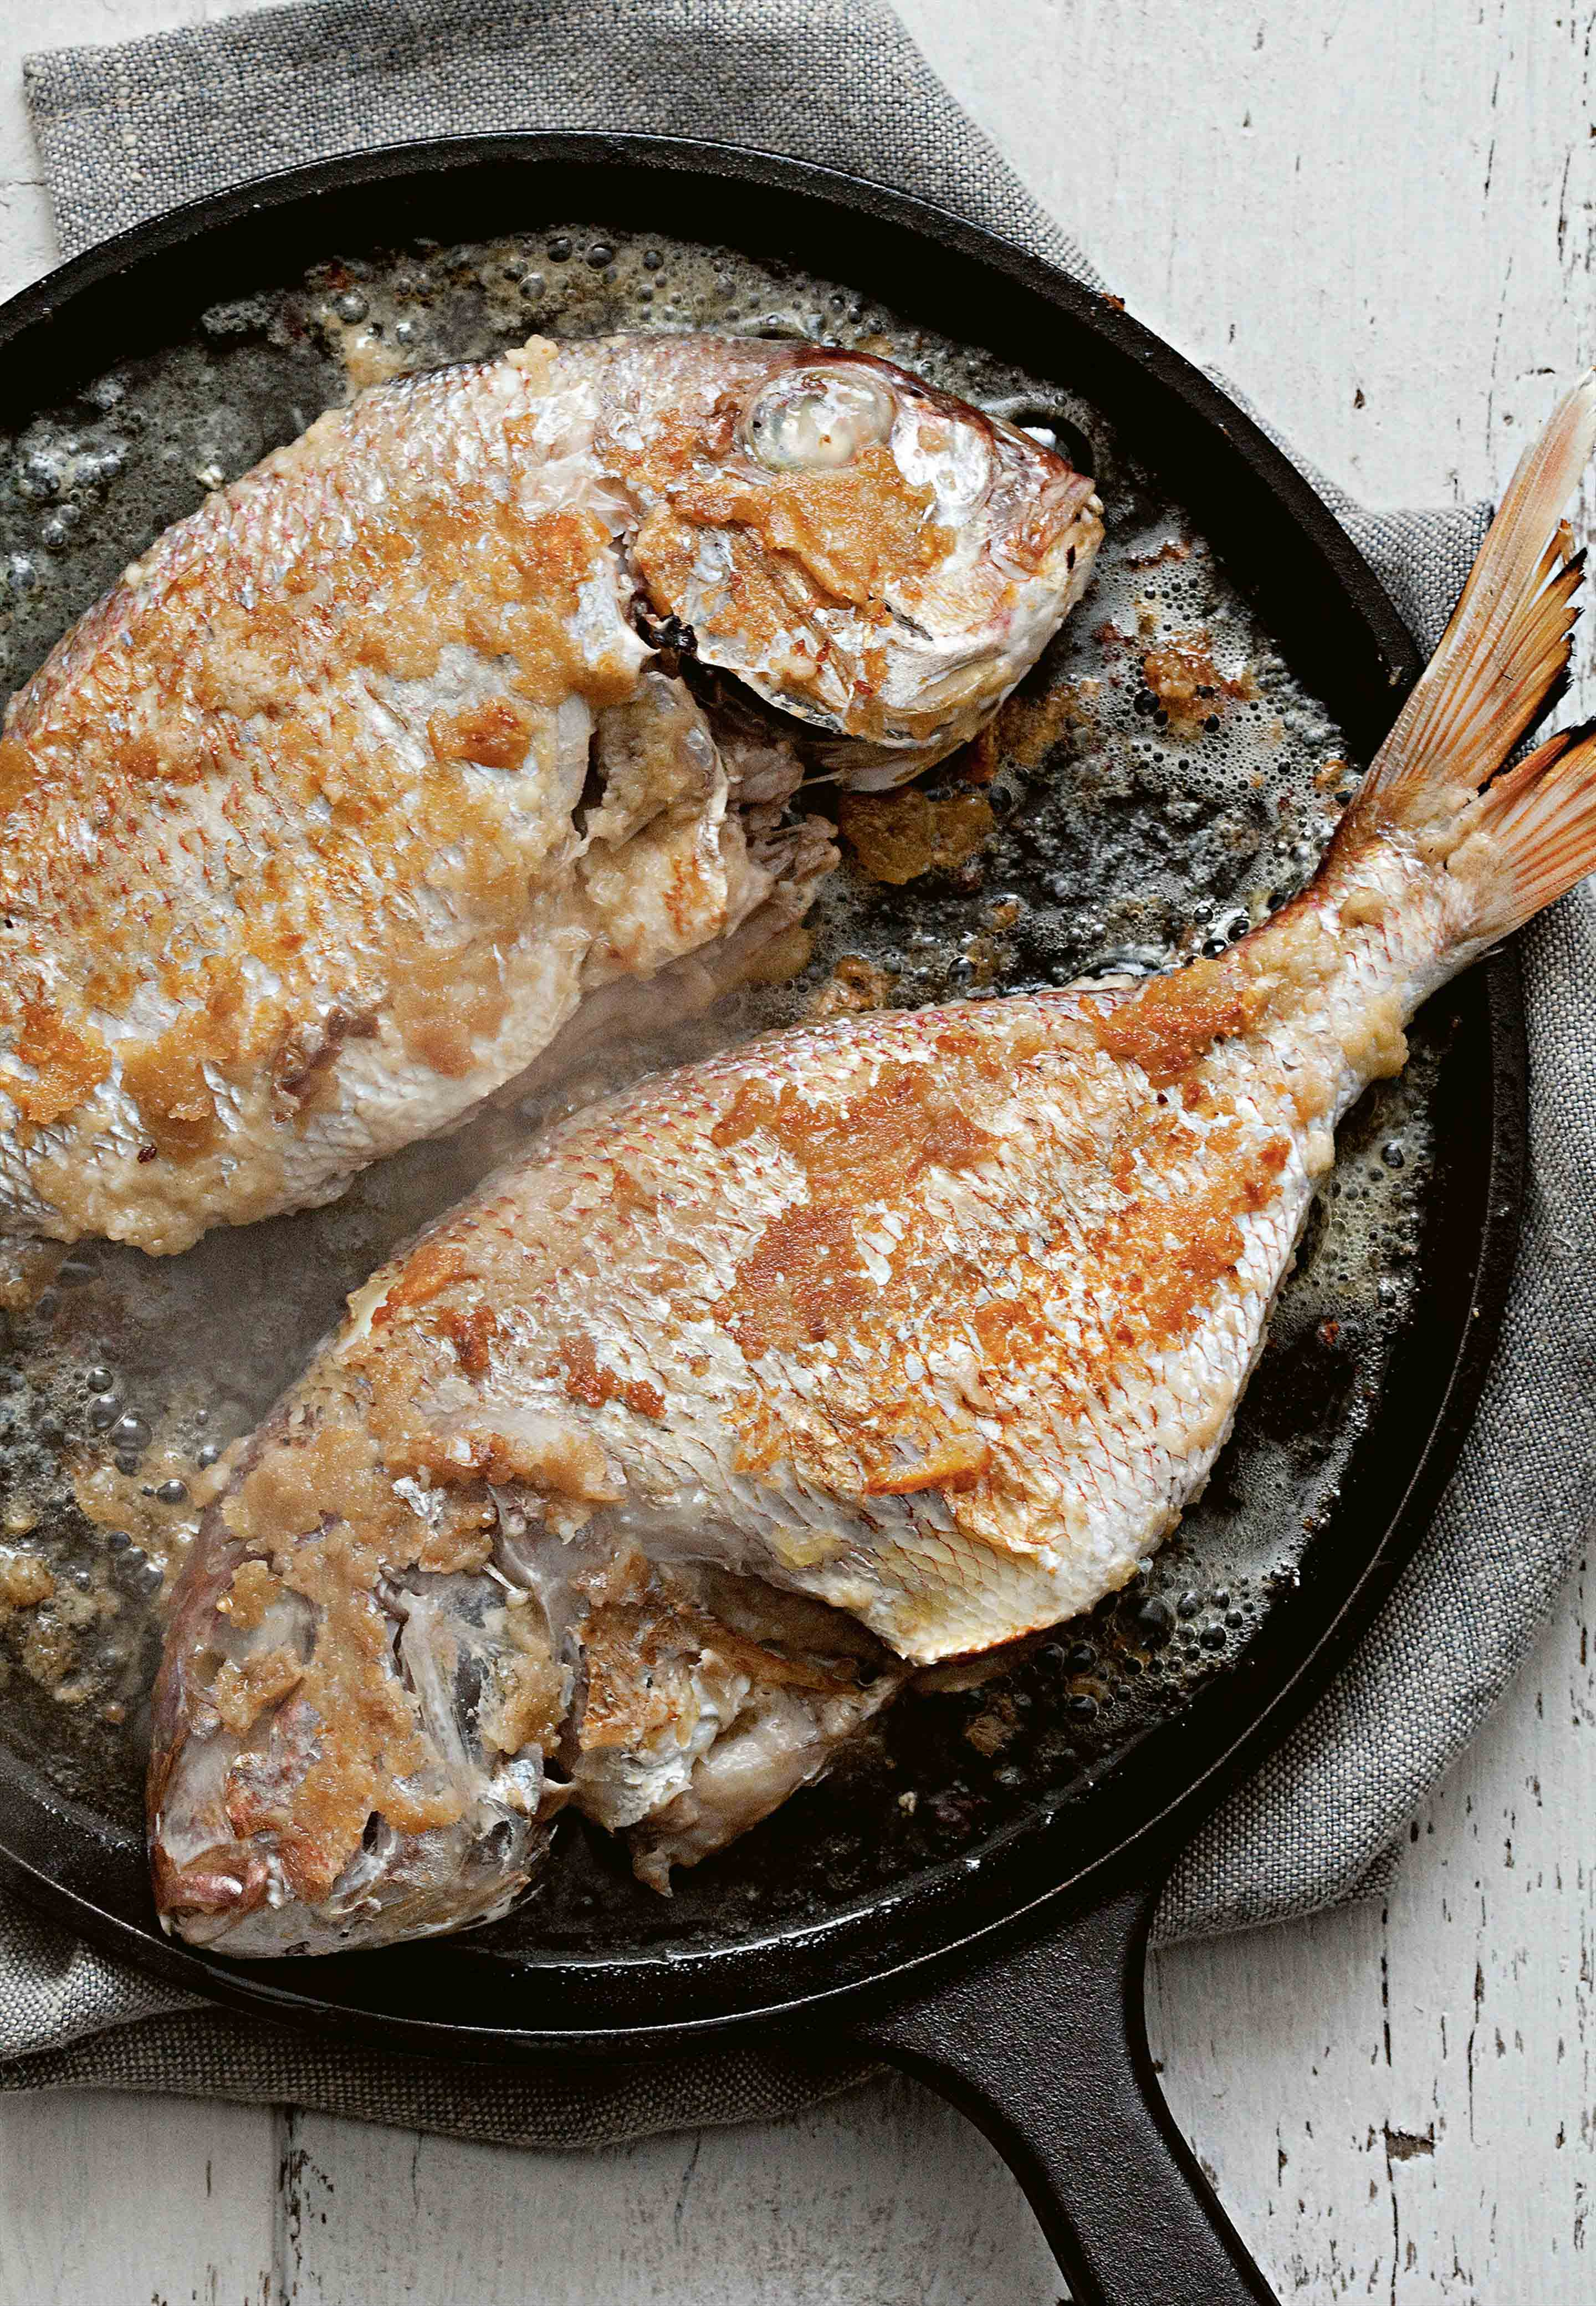 Bream (or rosetia) in garlic sauce